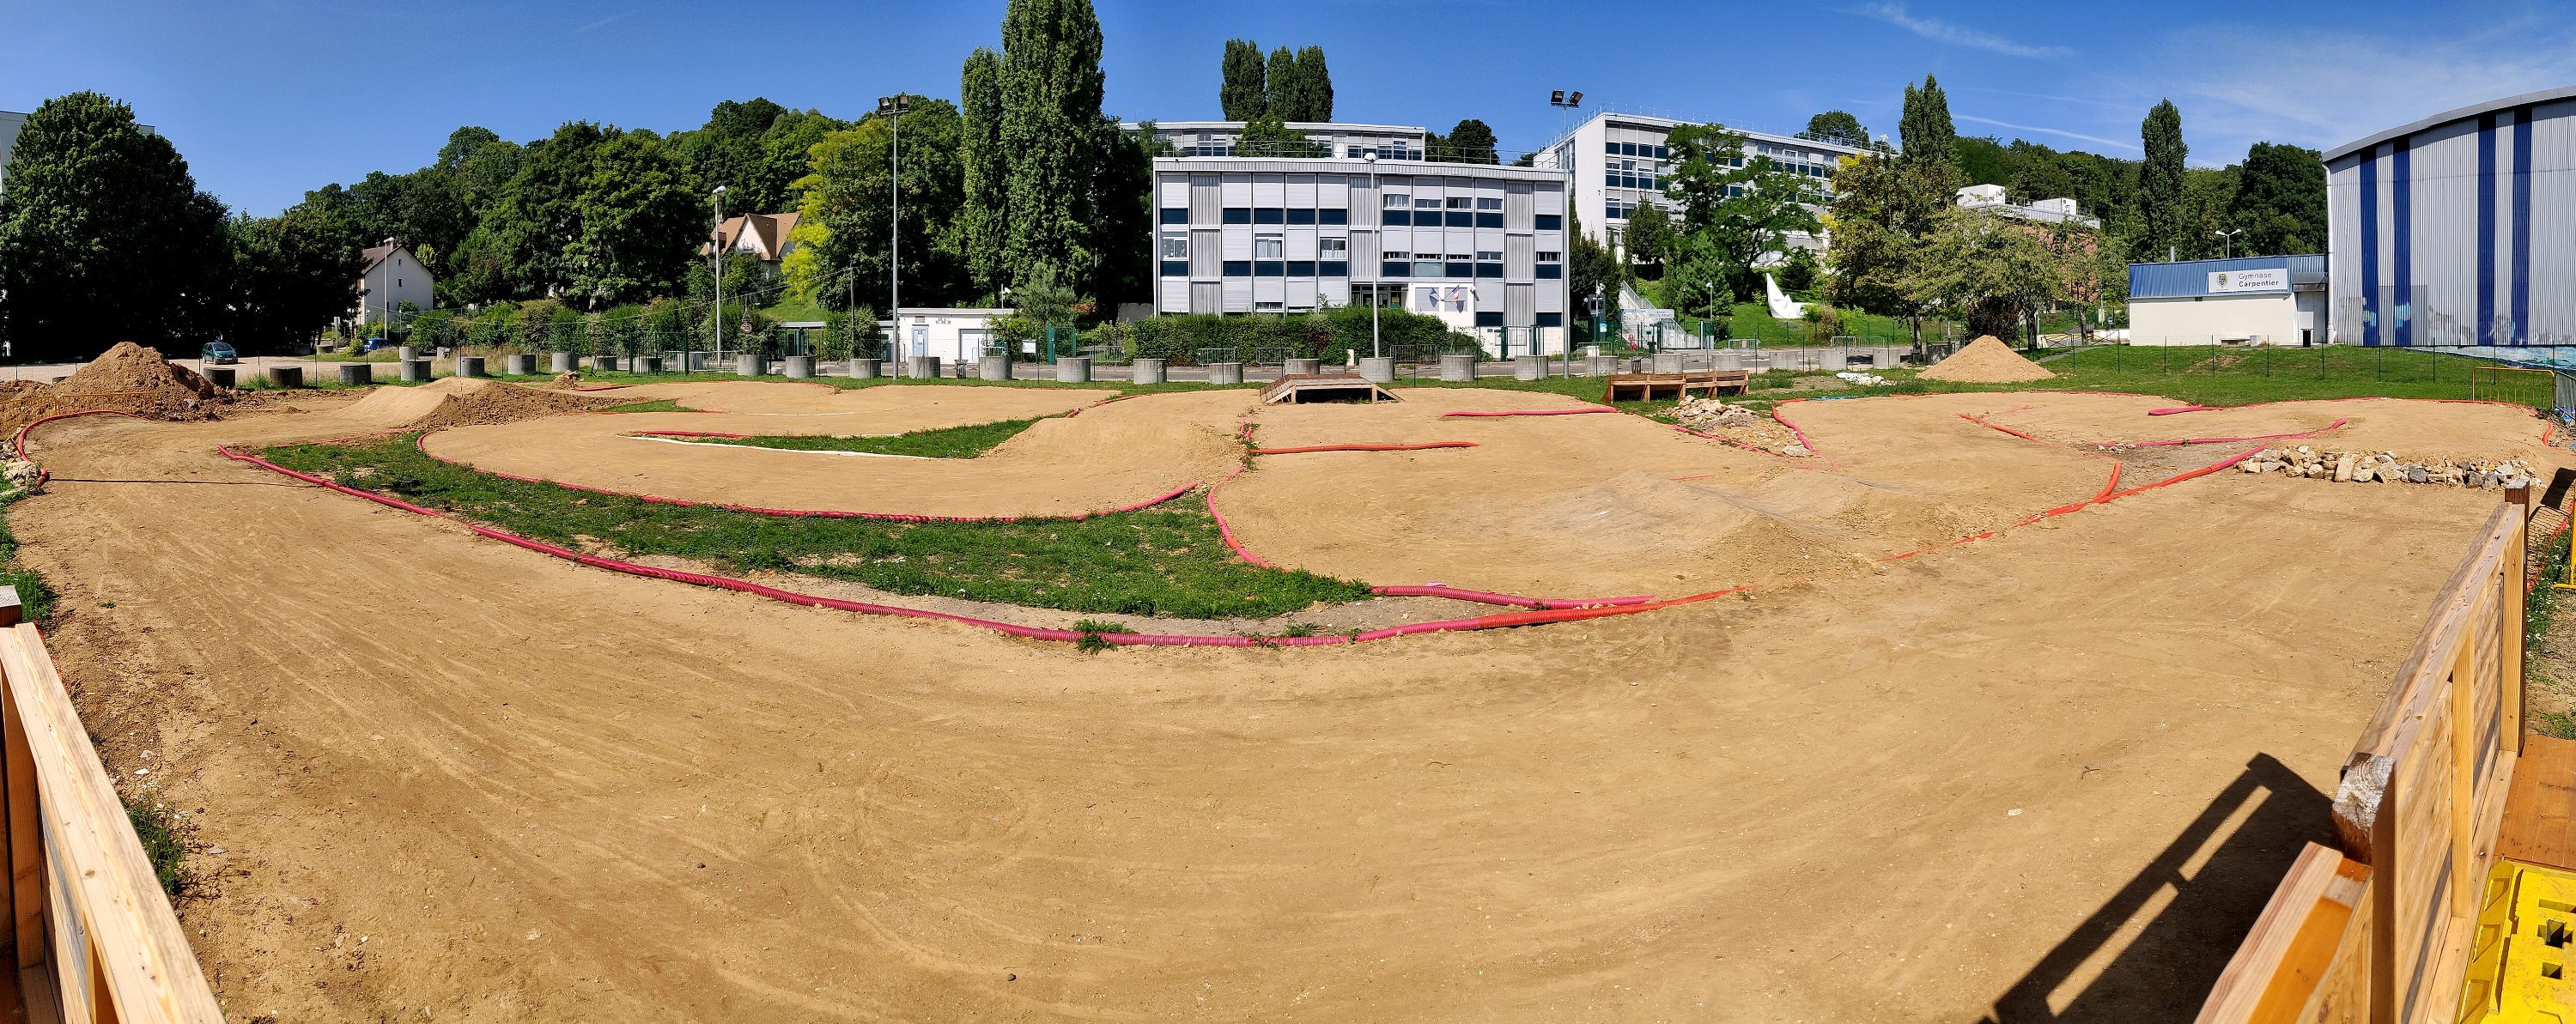 Circuit – Photos Août 2019